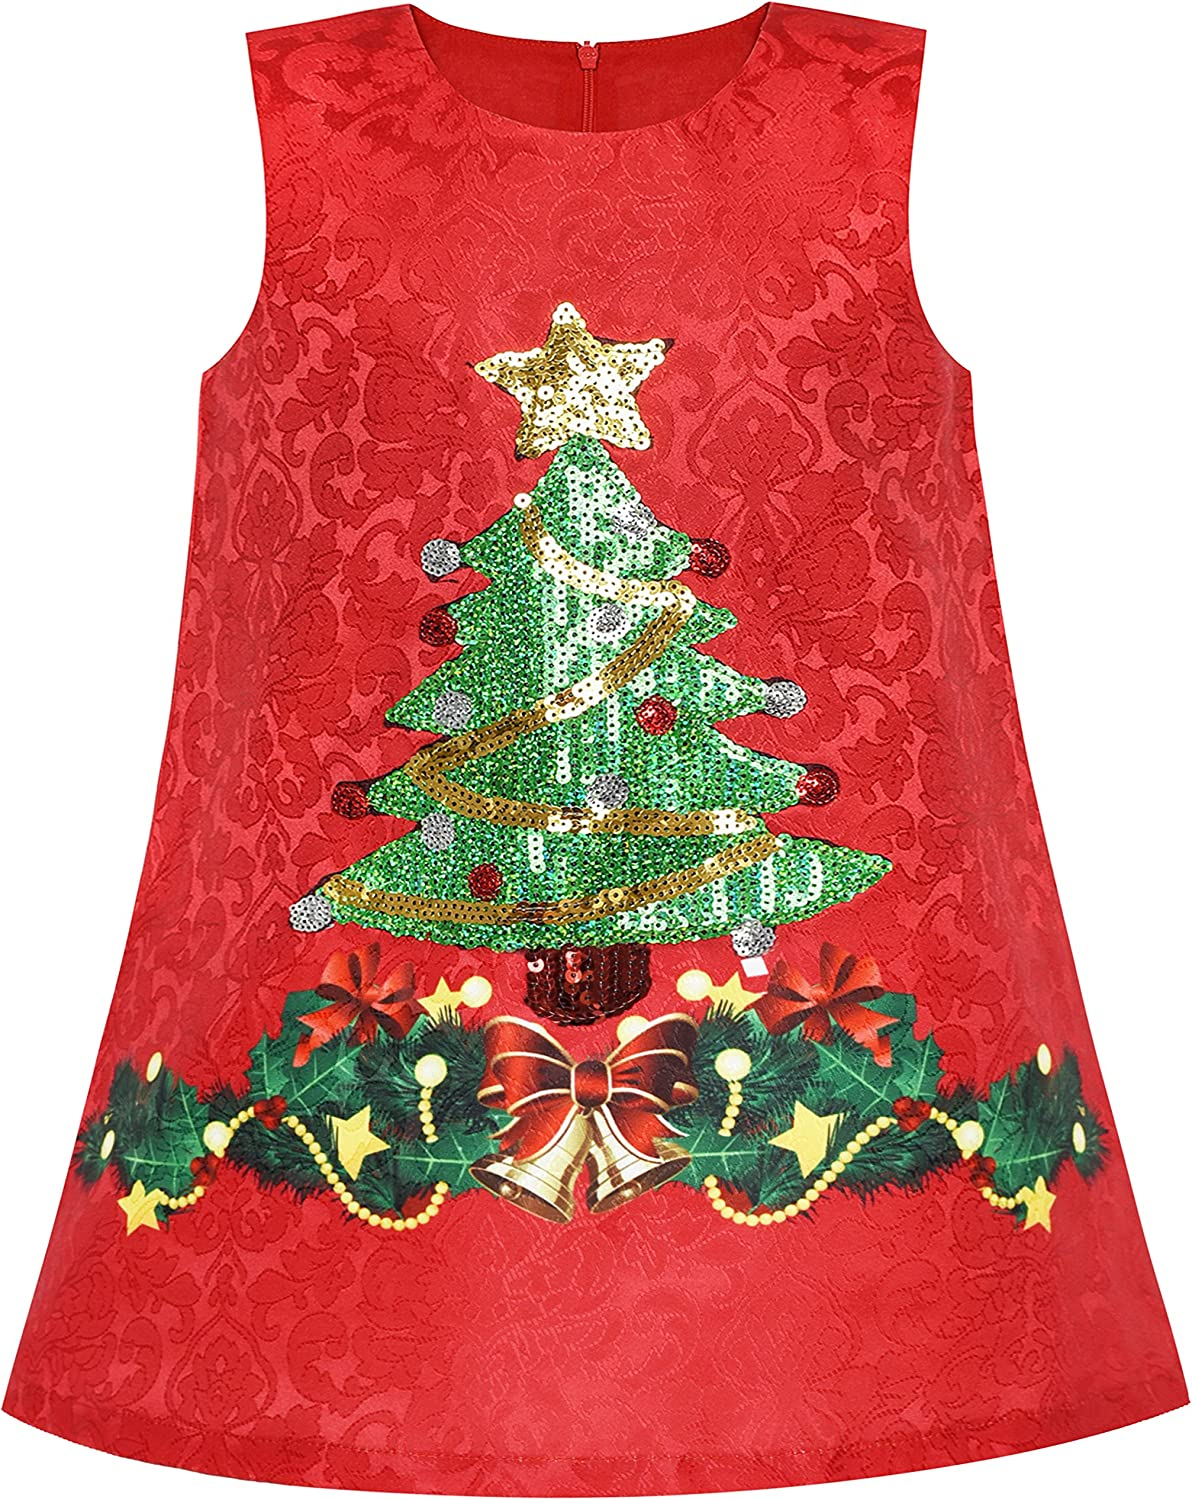 Sunny Fashion Girls Dress A-line Christmas Tree Xmas Sequin Sparkling Party